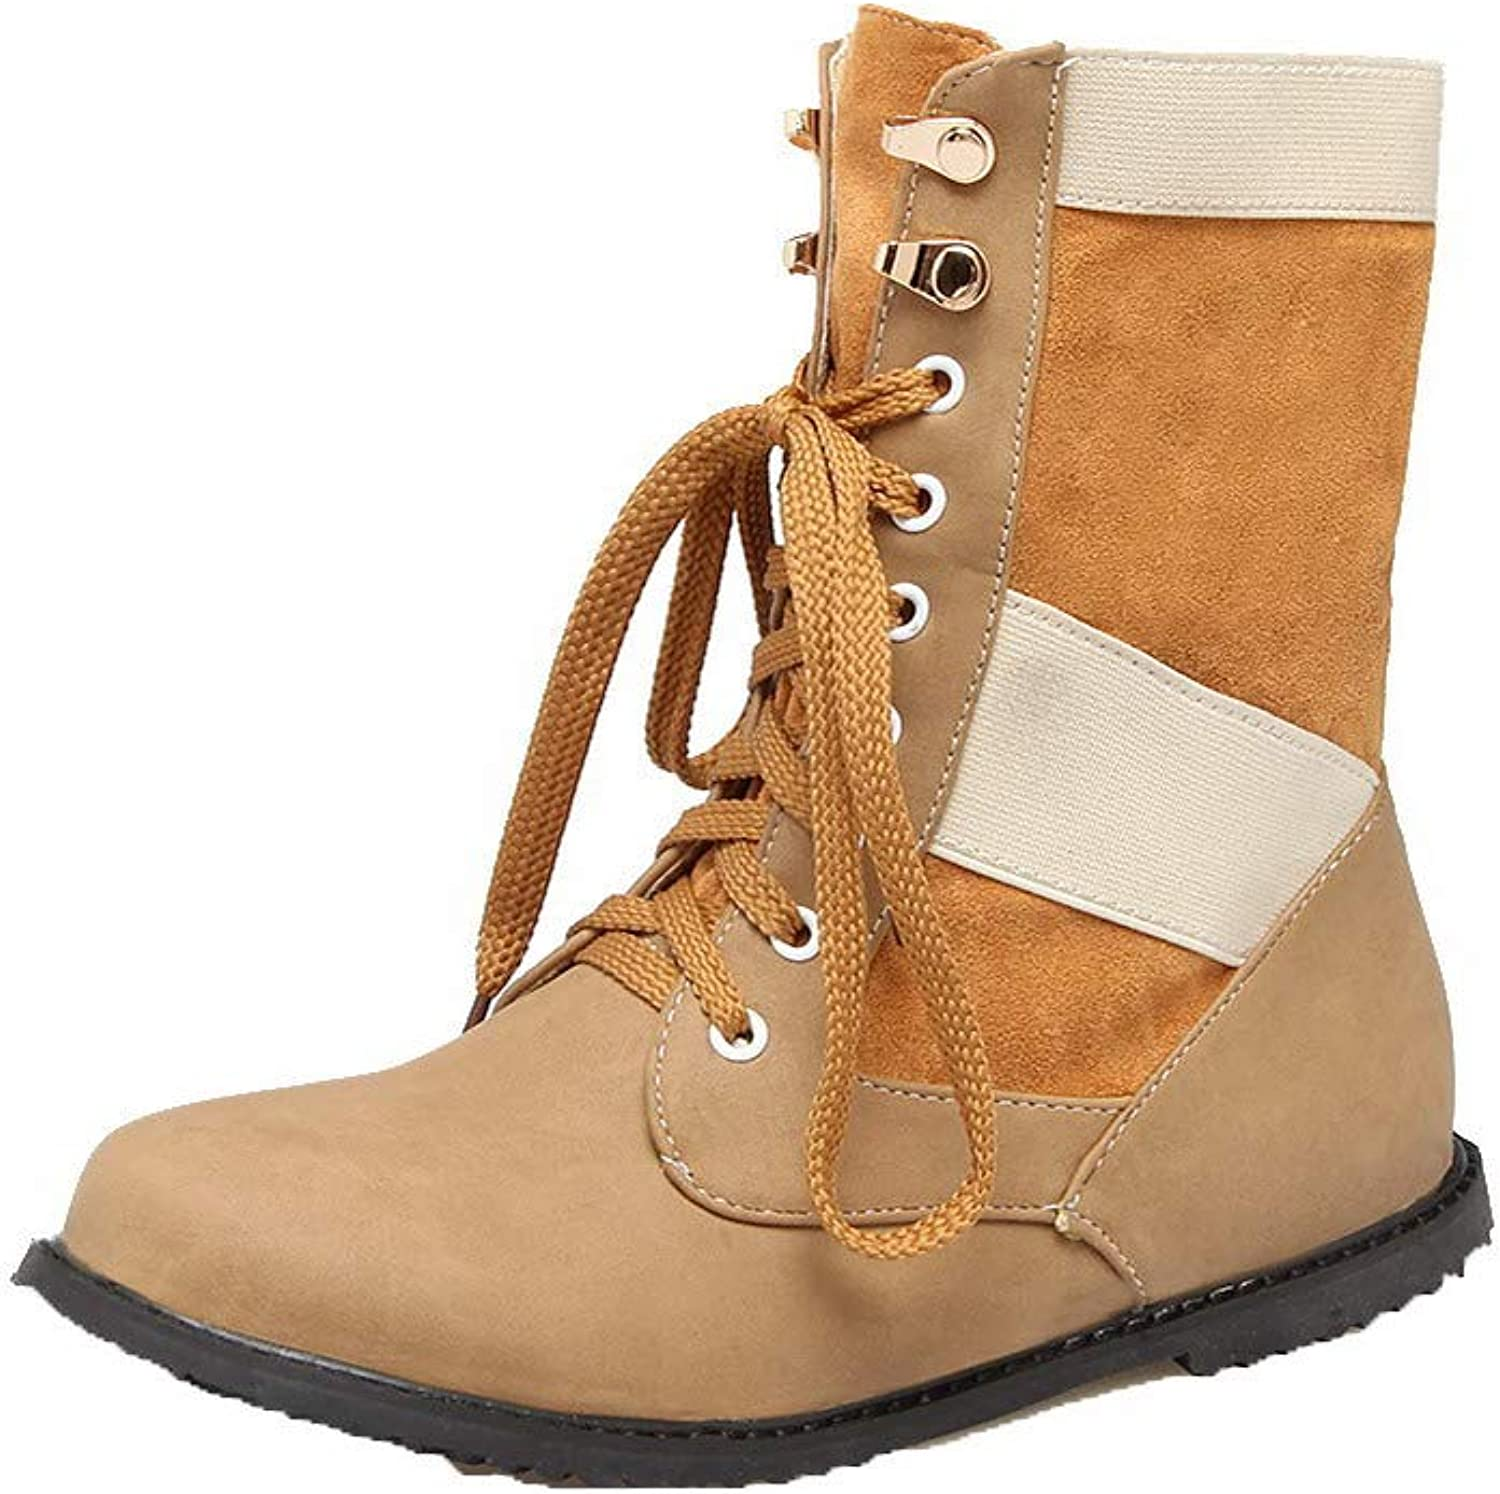 WeenFashion Women's Lace-Up Round-Toe Low-Heels Pu Low-Top Boots, AMGXX117693